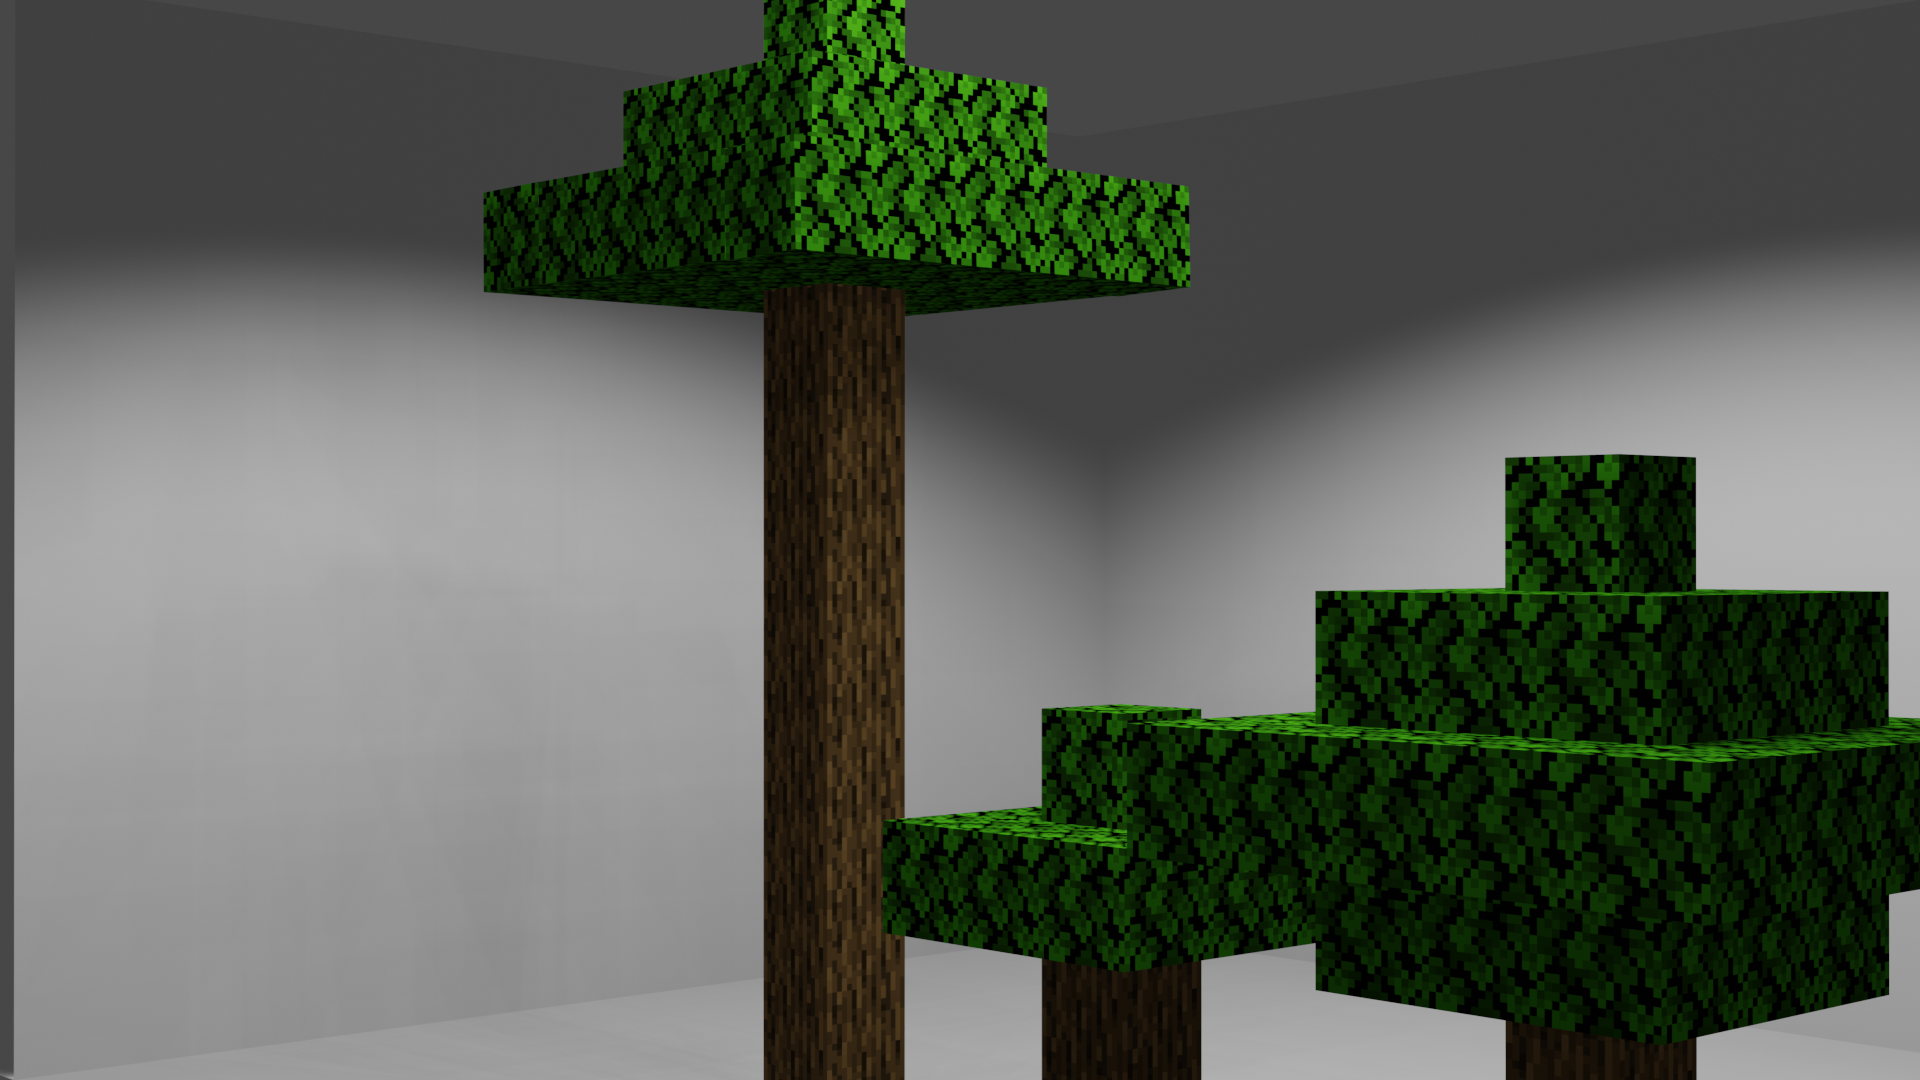 Minecraft Oak Tree preview image 2